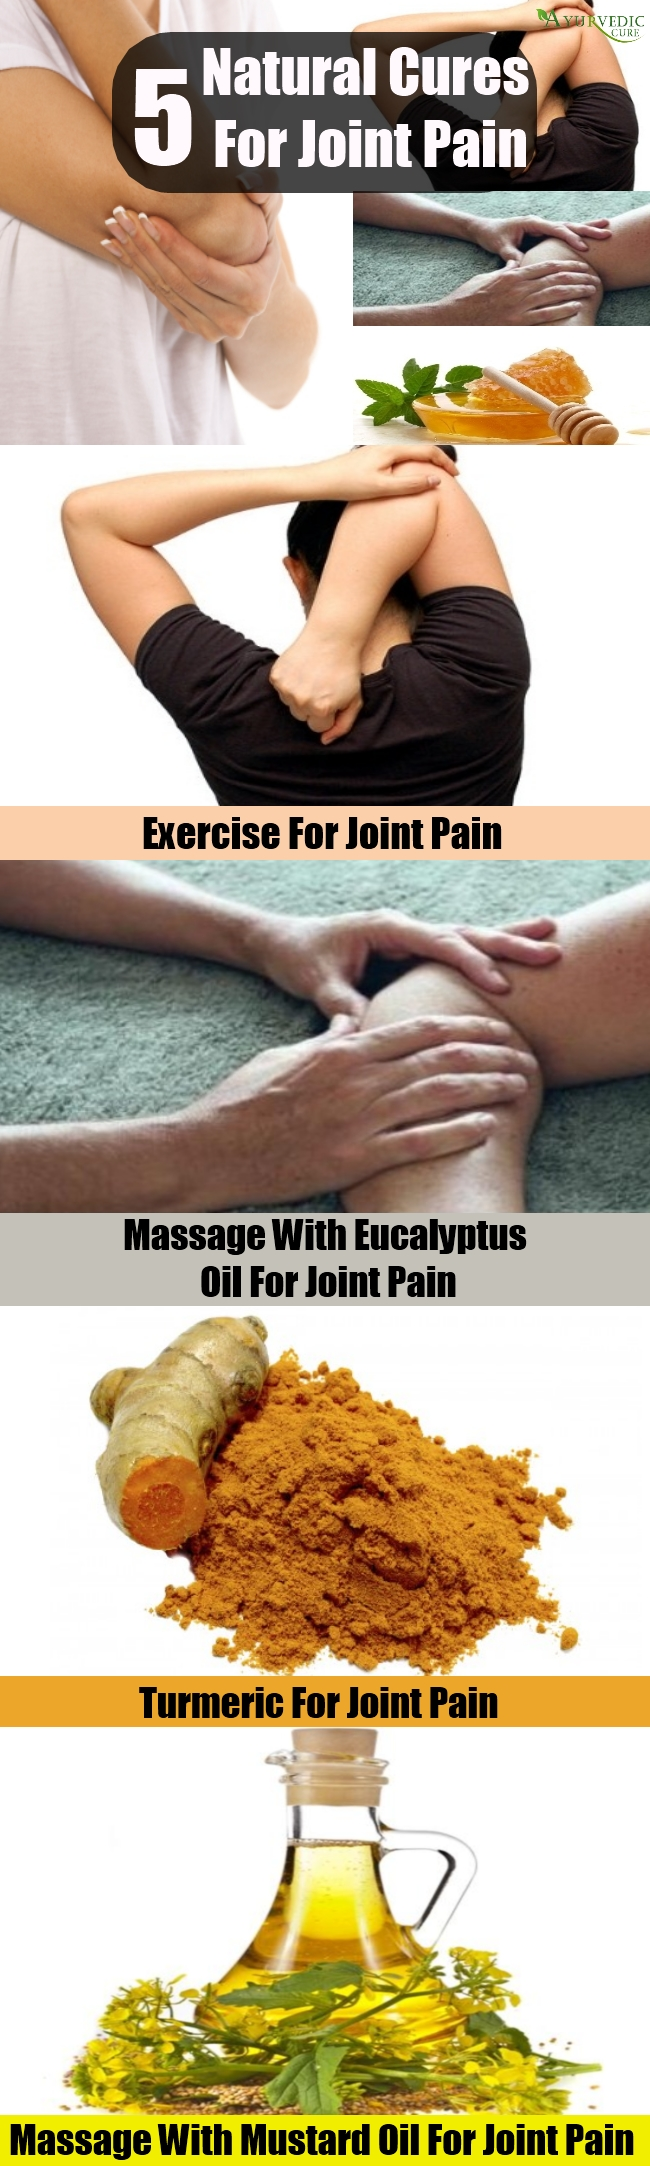 Top 5 Natural Cures For Joint Pain